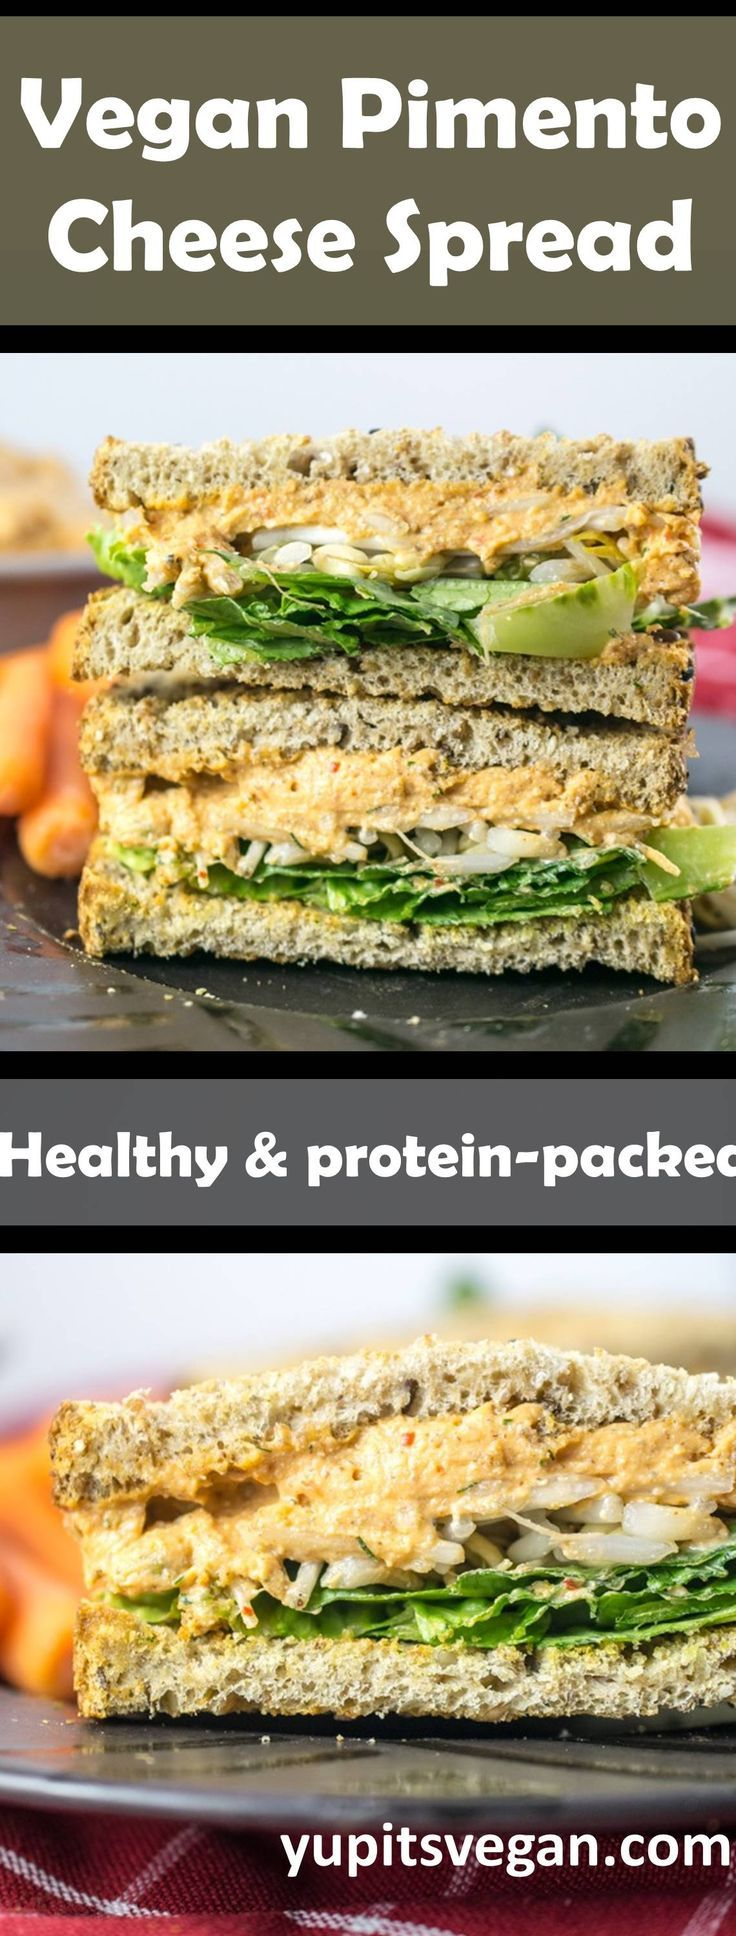 Vegan Pimento Cheese Spread Sandwiches | Yup, it's Vegan. Creamy pimento-cheese style vegan spread made from healthy whole foods, plant-based ingredients. High-protein from tofu or white beans, umami flavor from almond butter and miso, and roasted red peppers for some spiciness. Ready in under 30 minutes.